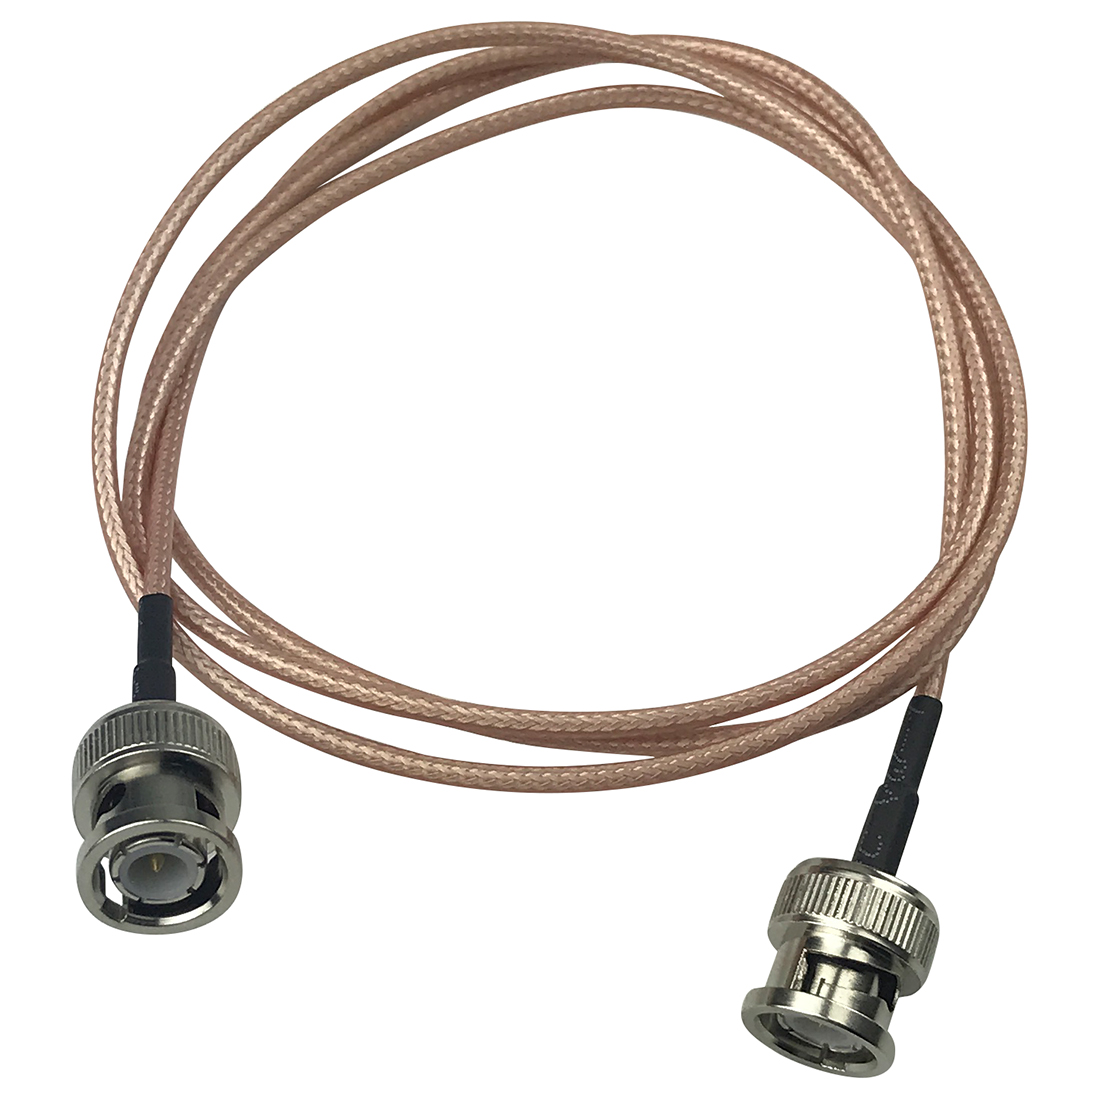 Image 4 - RG316 SDI Cable 50 Ohm BNC Male to BNC Male Video Coaxial Coax Cable for SDI Camera Security CCTV Camera DVR System/BMCC 1M/3FT-in Transmission & Cables from Security & Protection